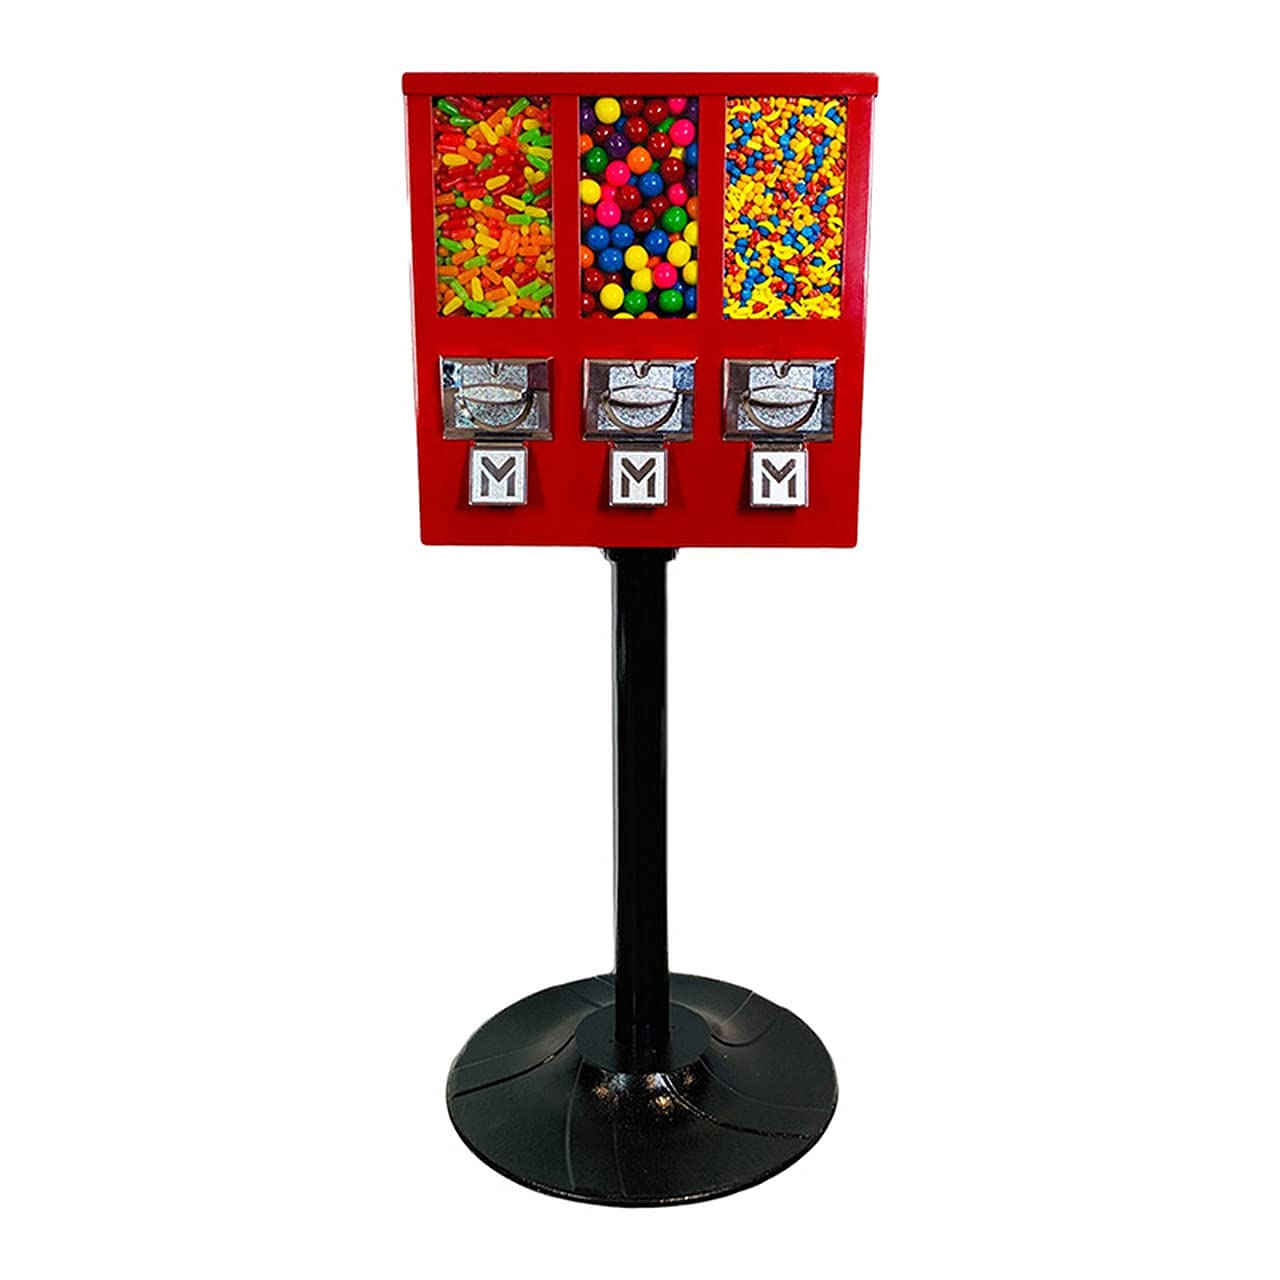 Red All Metal Triple Compartment Machine Many popular brands gift Vending Commercial for